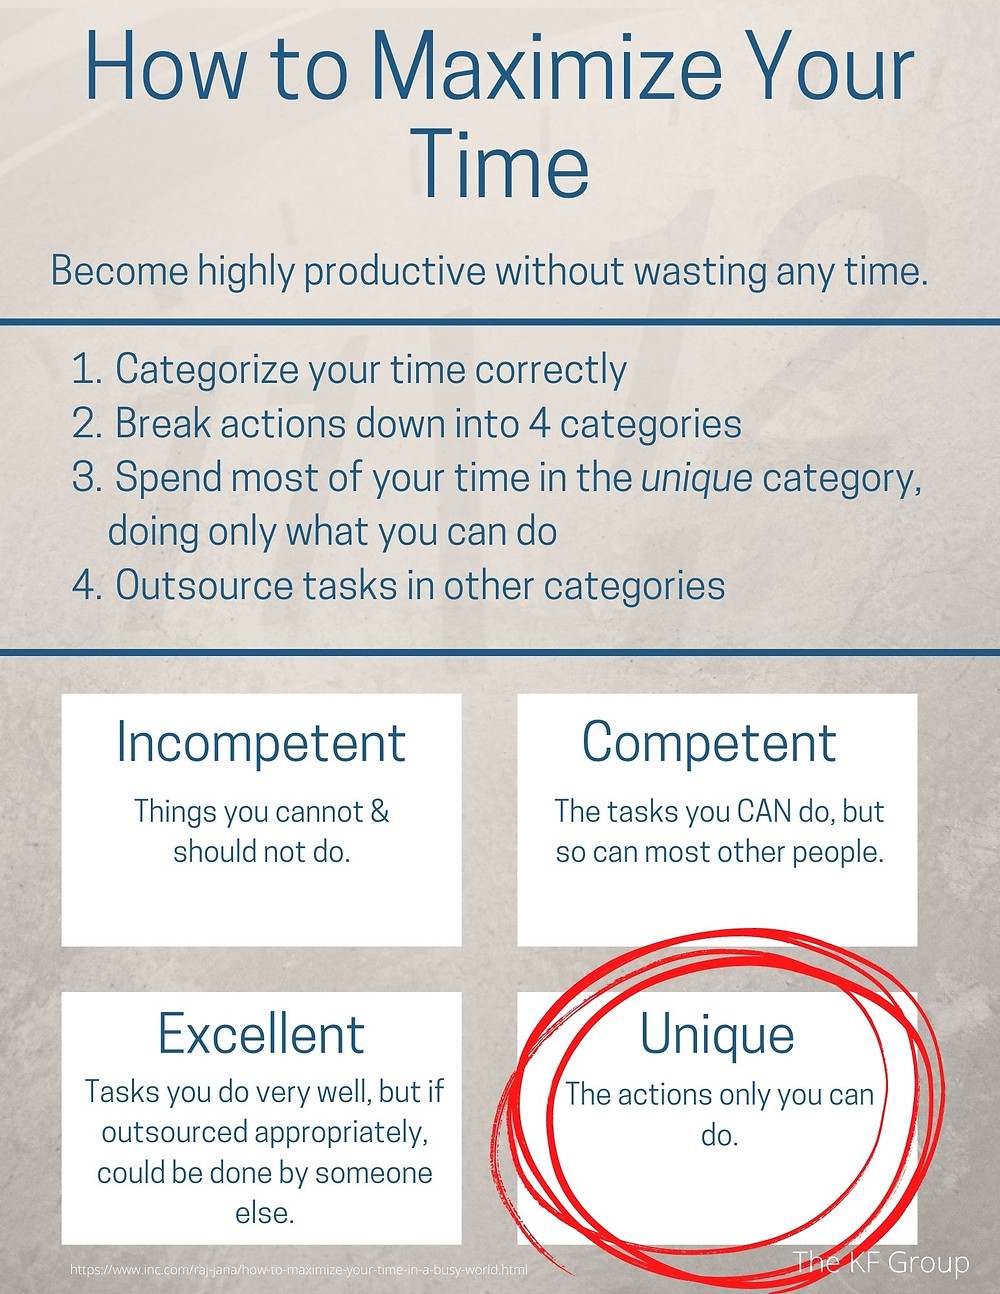 How to maximize your time cheat sheet